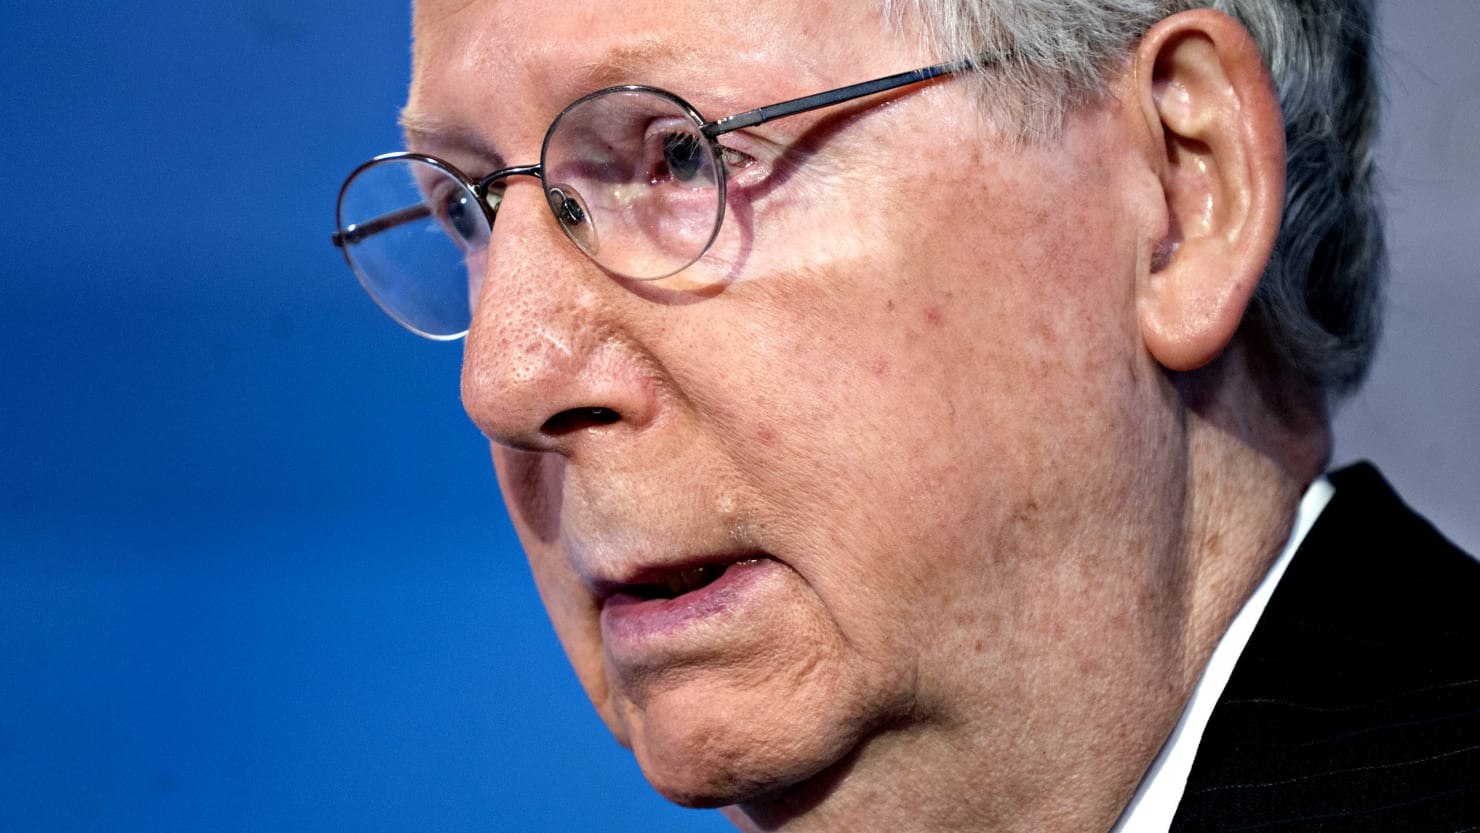 Inside Mitch McConnell Is the Mind of a Soviet Apparatchik